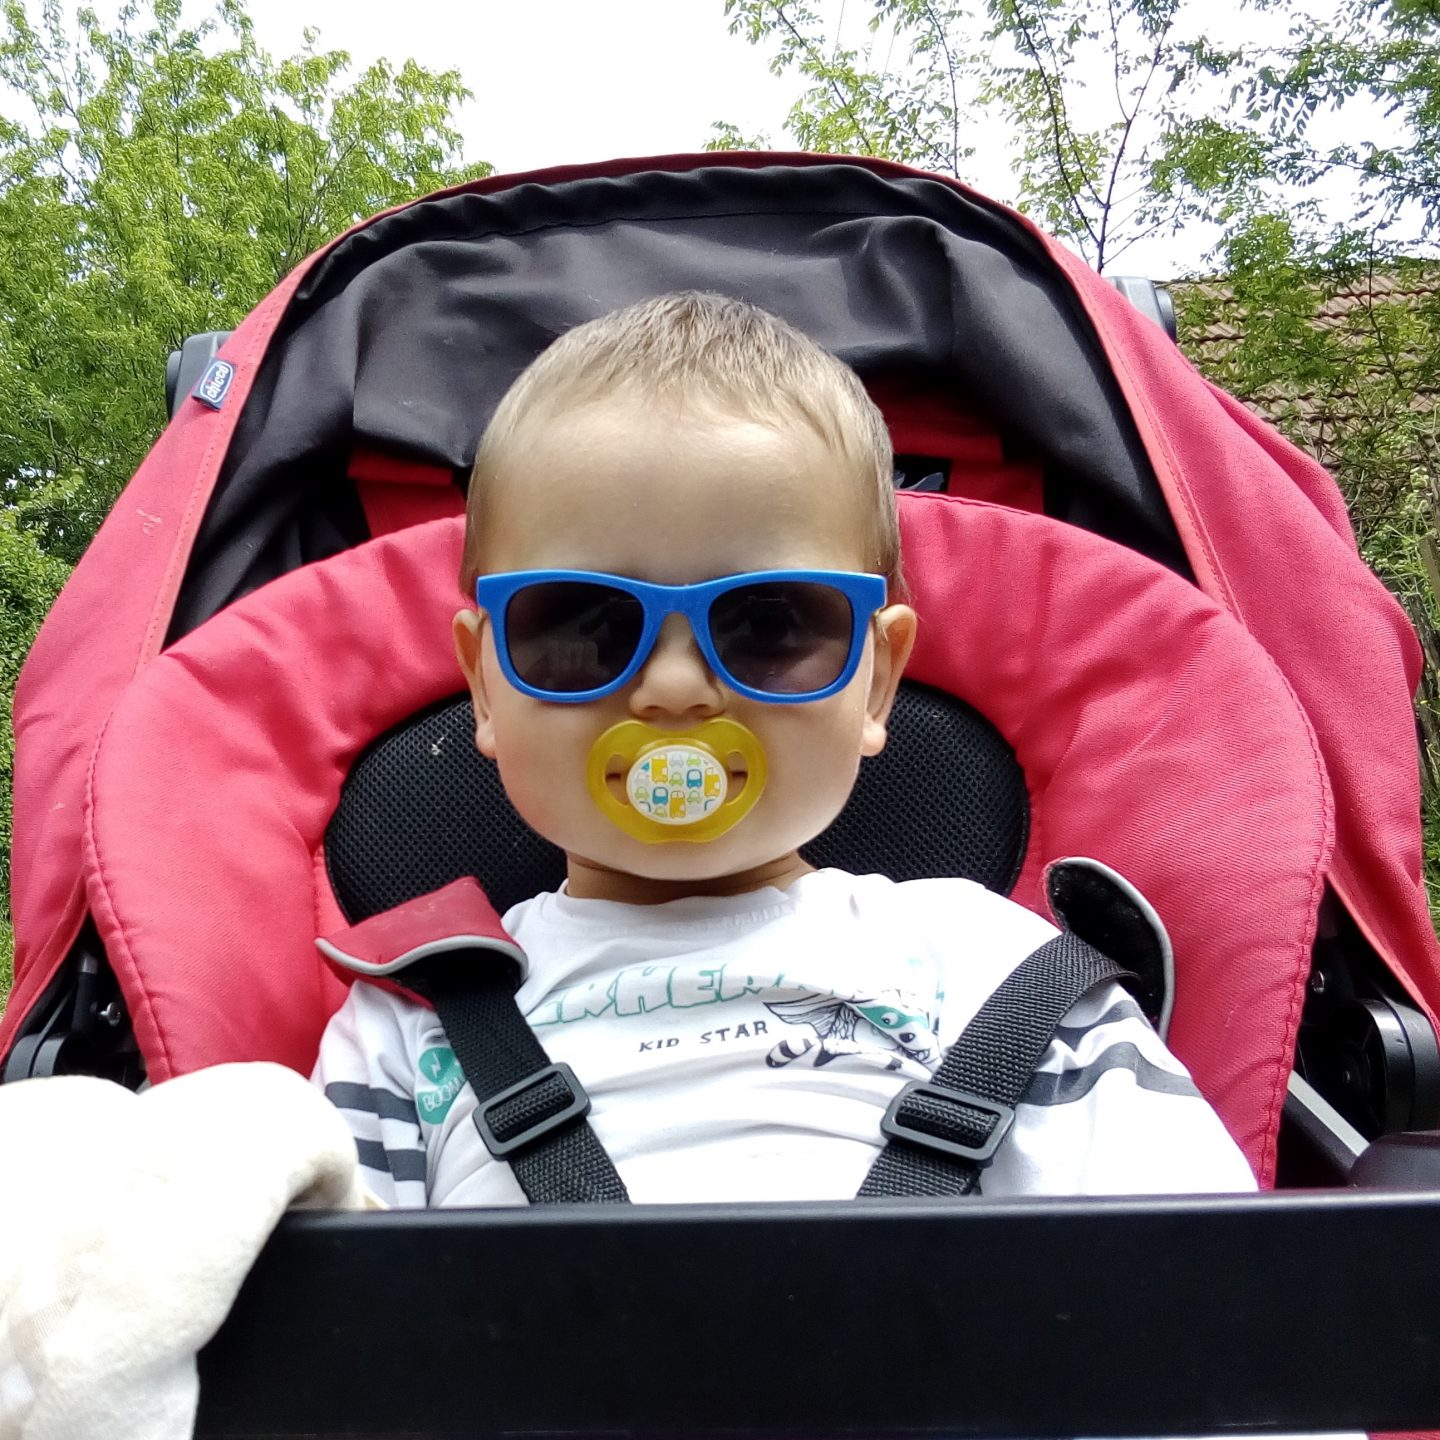 Help! My Toddler Won't Stop Using the Pacifier!